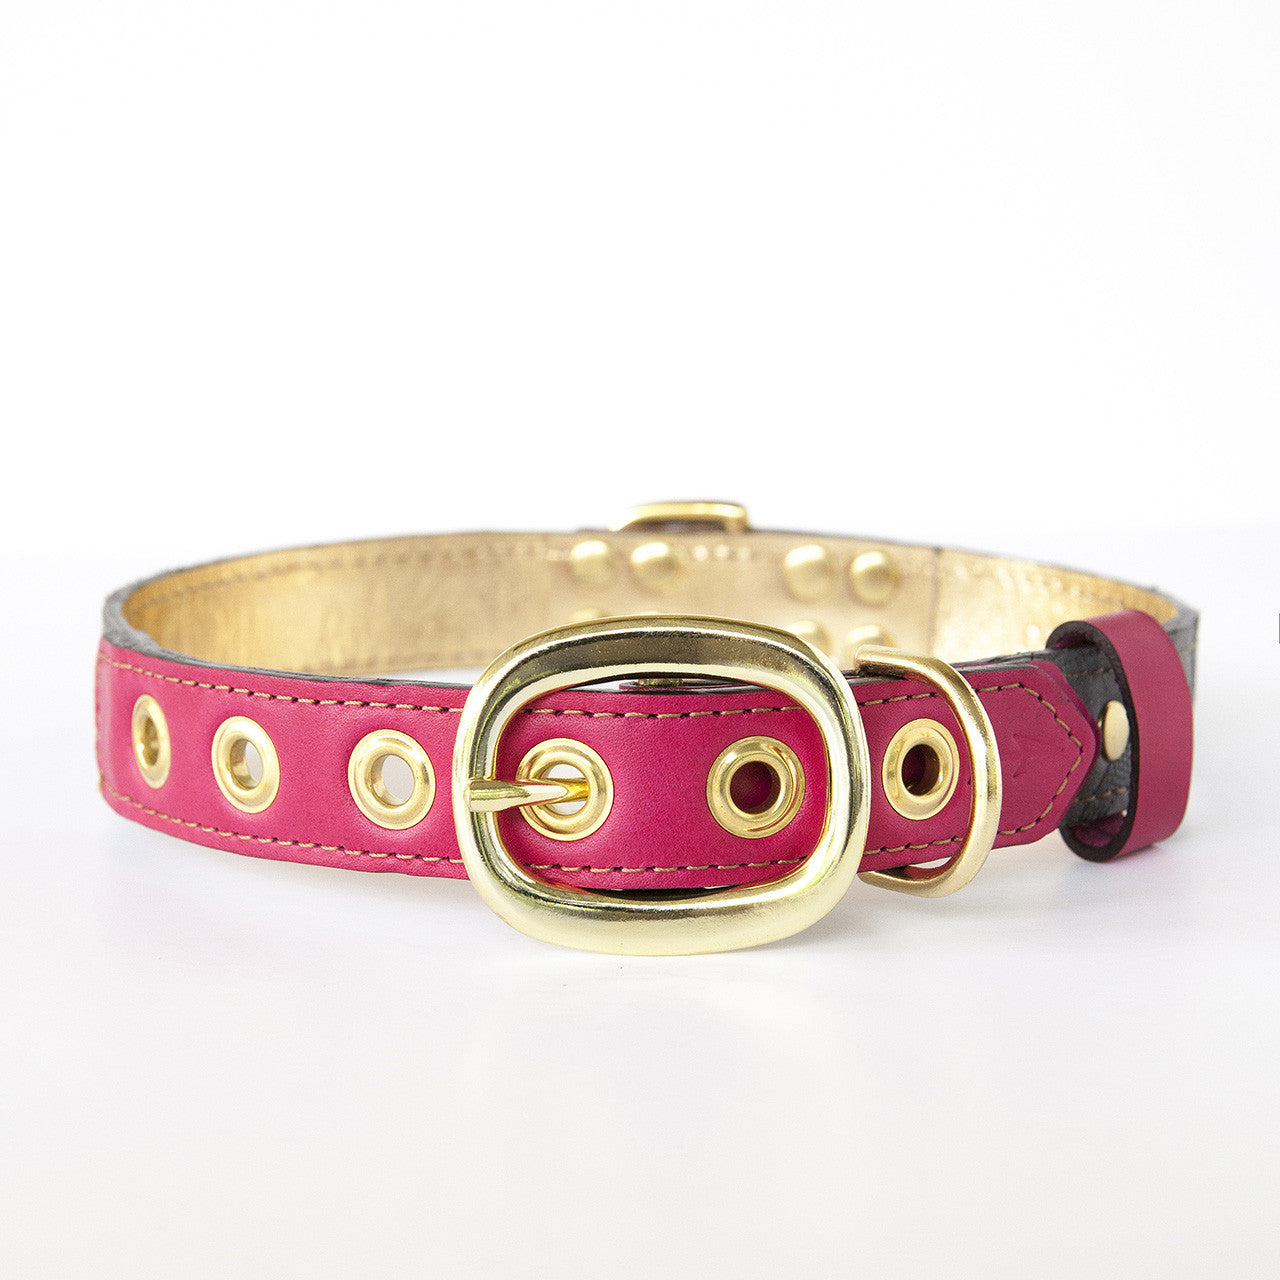 Hot Pink Dog Collar with Gray Leather + Navy Stitching (back view)